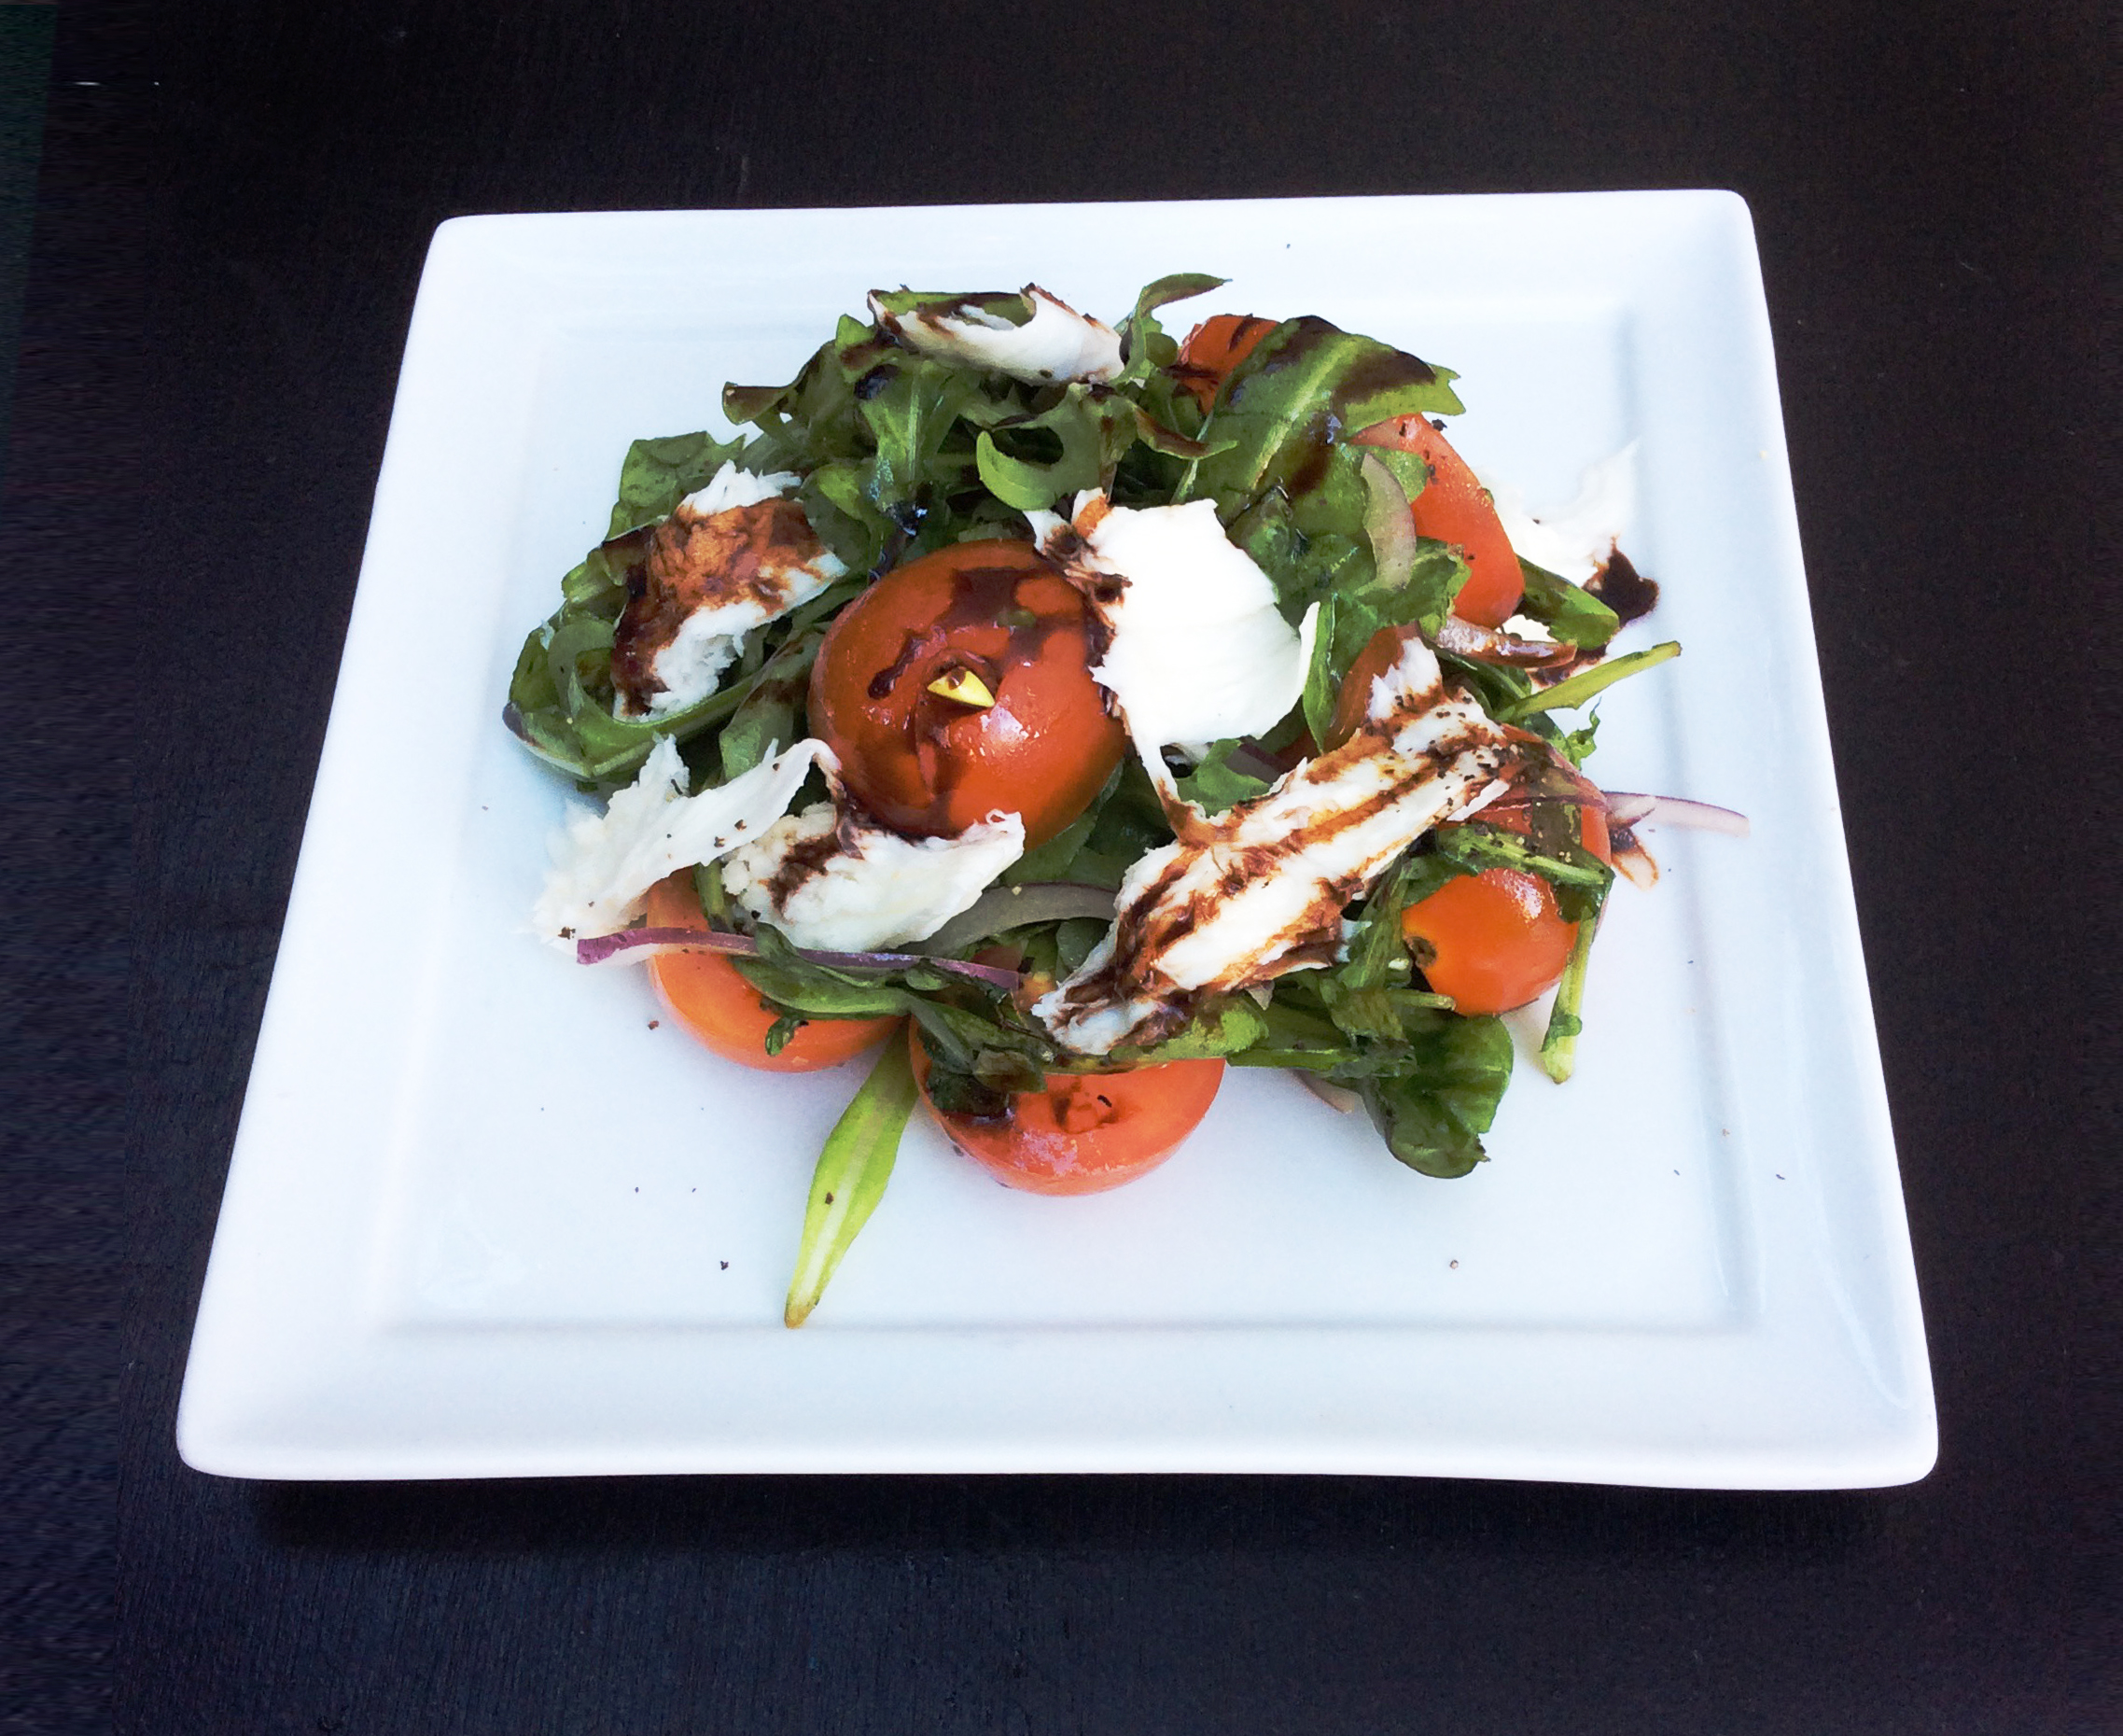 2nd Course - Caprice Salad - Caprice salad with fresh mozzarella, tomatoes, fresh basil, arugula, red onion, and a drizzle of balsamic reduction